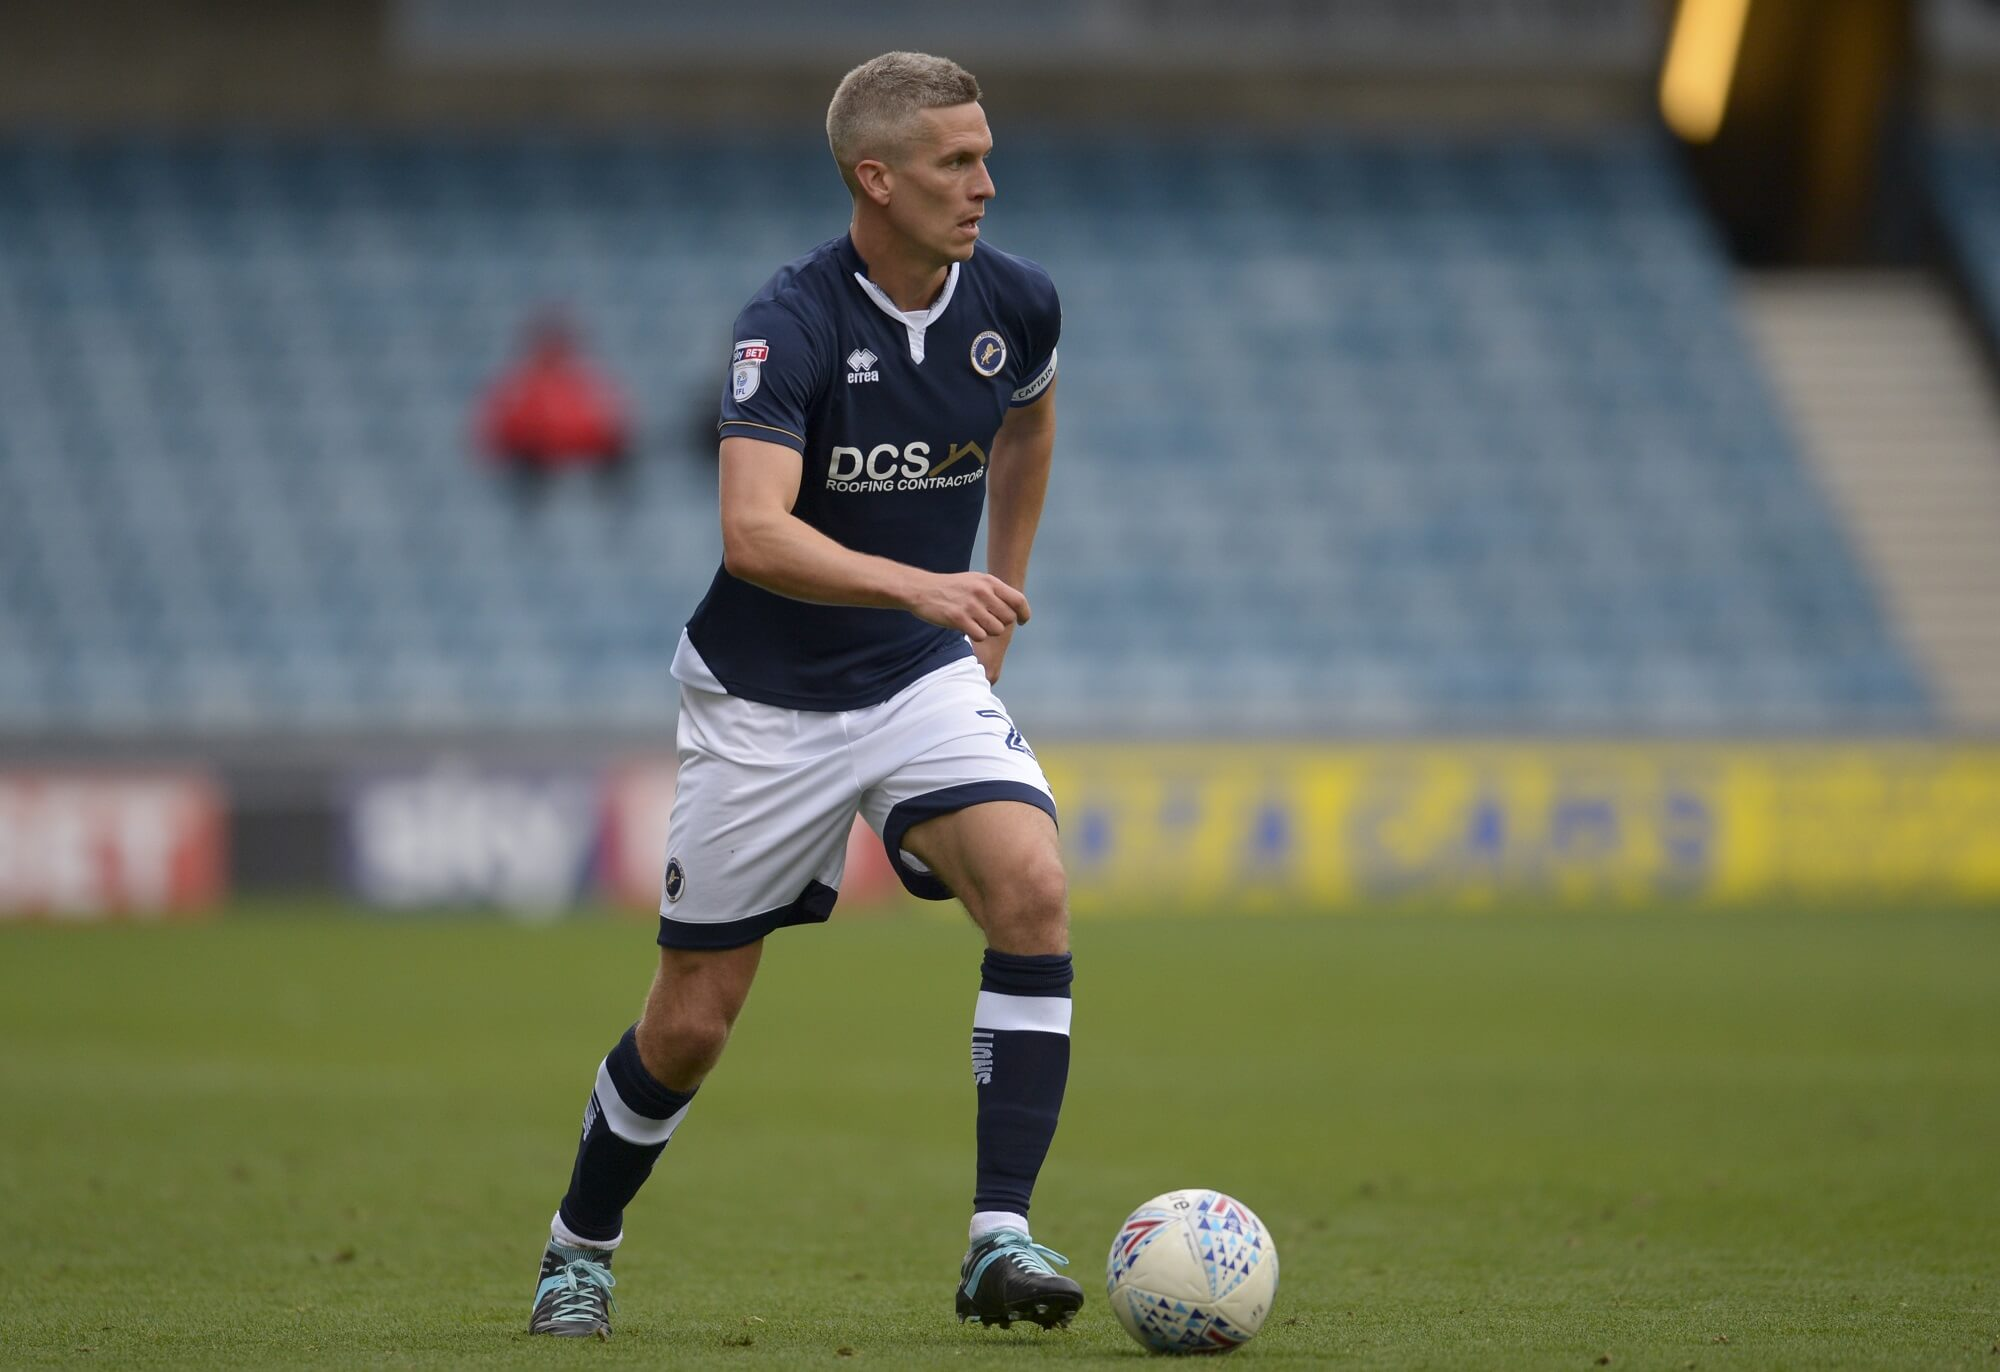 Millwall Leave Wales With A Point In Dismal Affair